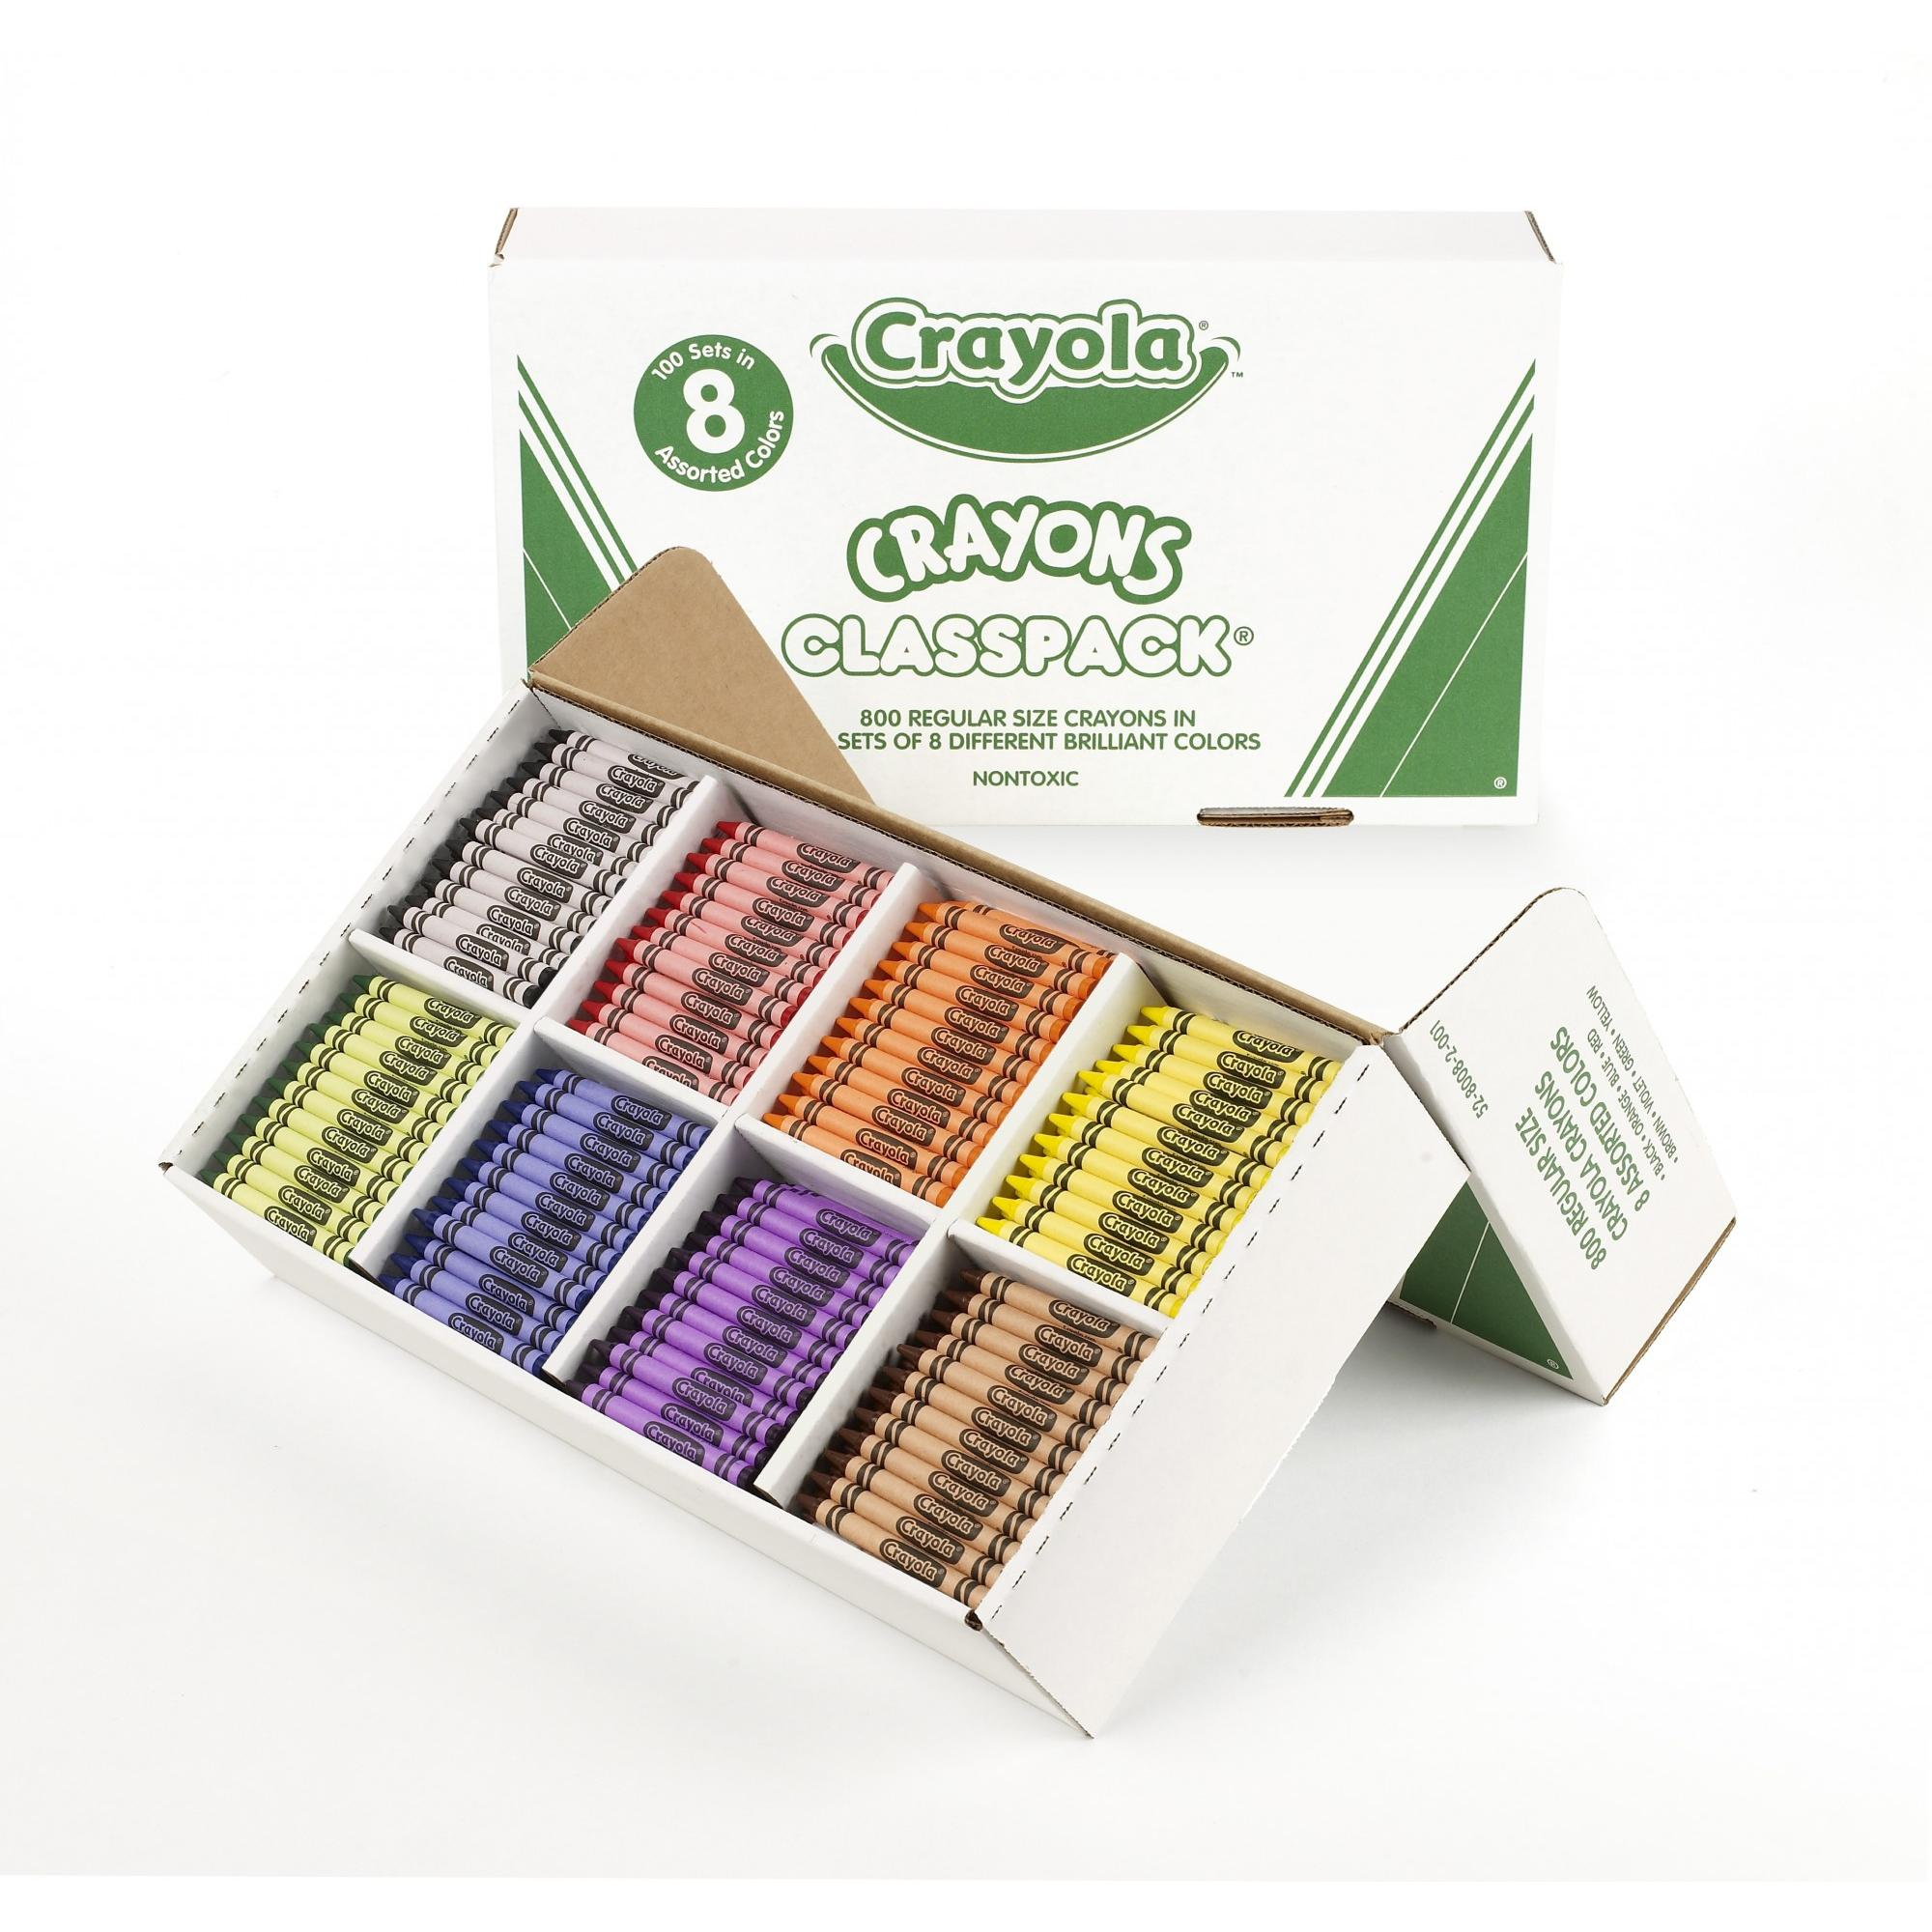 Crayola Classpack of Regular Crayons, 8 Colors, 800-Count